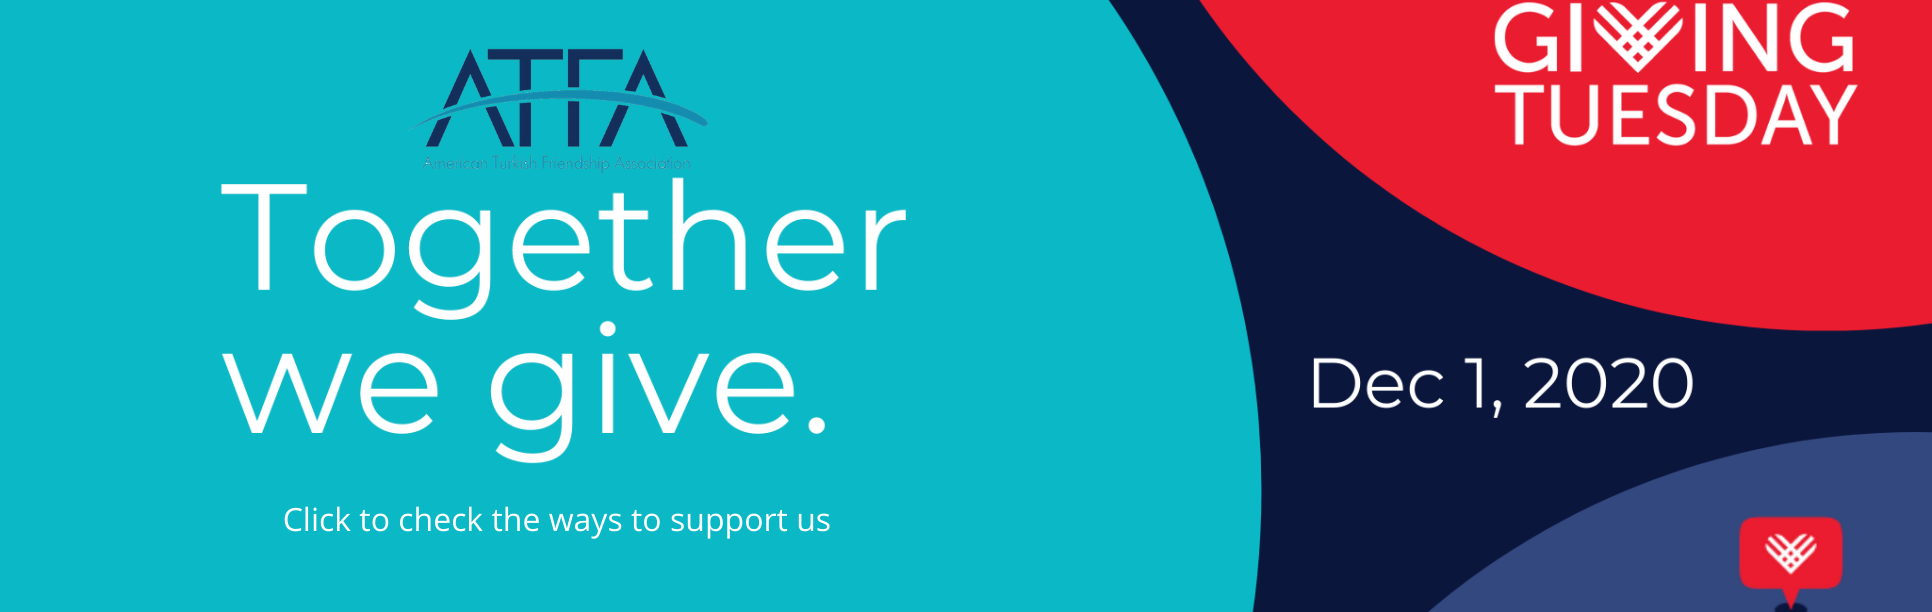 giving tuesday website.png